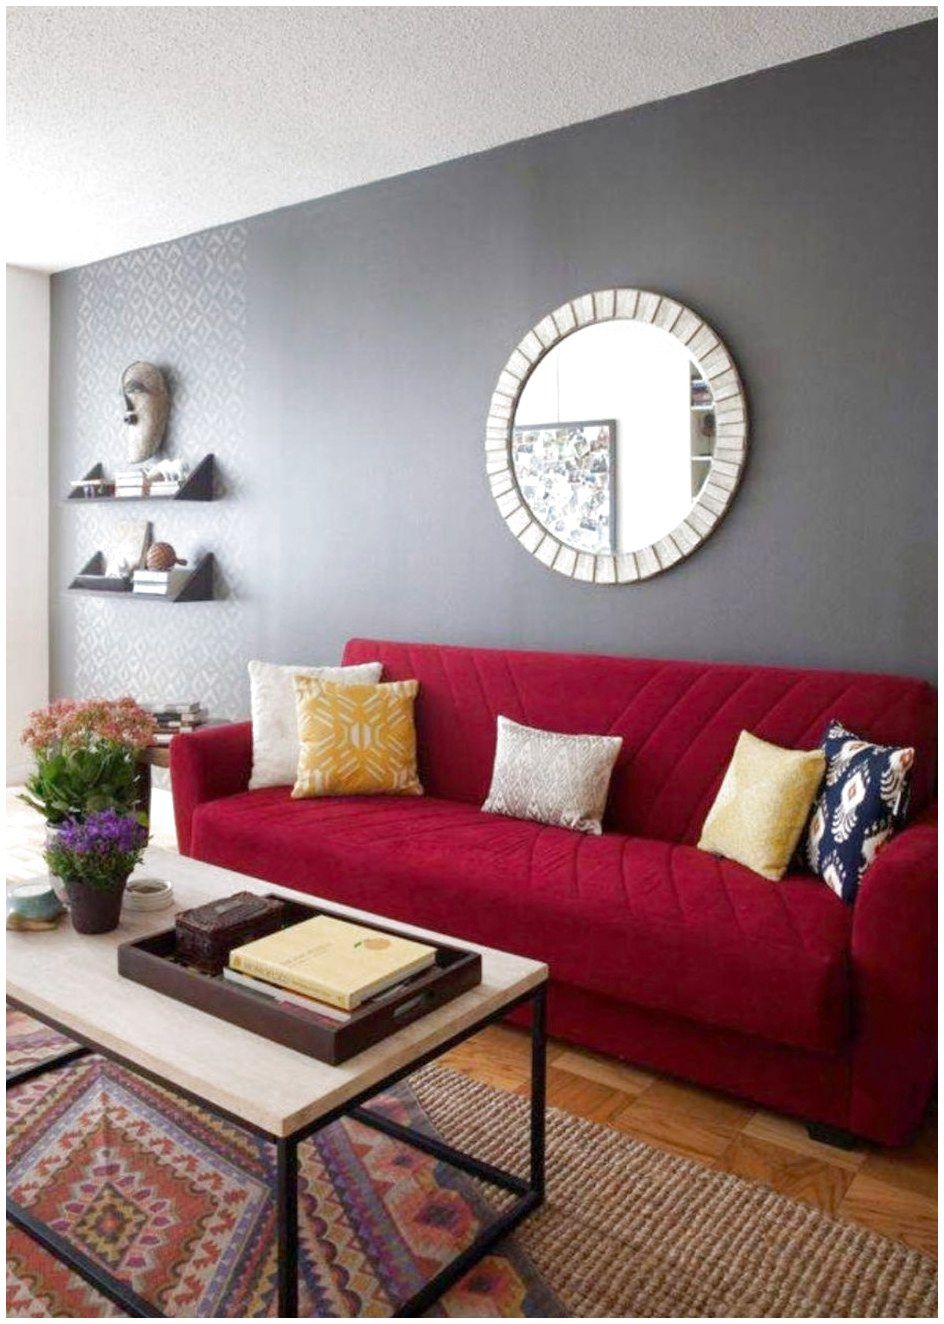 Ordinaire Paint, Simple Dark And Light Grey Combination For Best Colors To Paint  Living Room Walls With Red Comfy Fabric Sofa And Colorful Pillows And Light  Brown ...